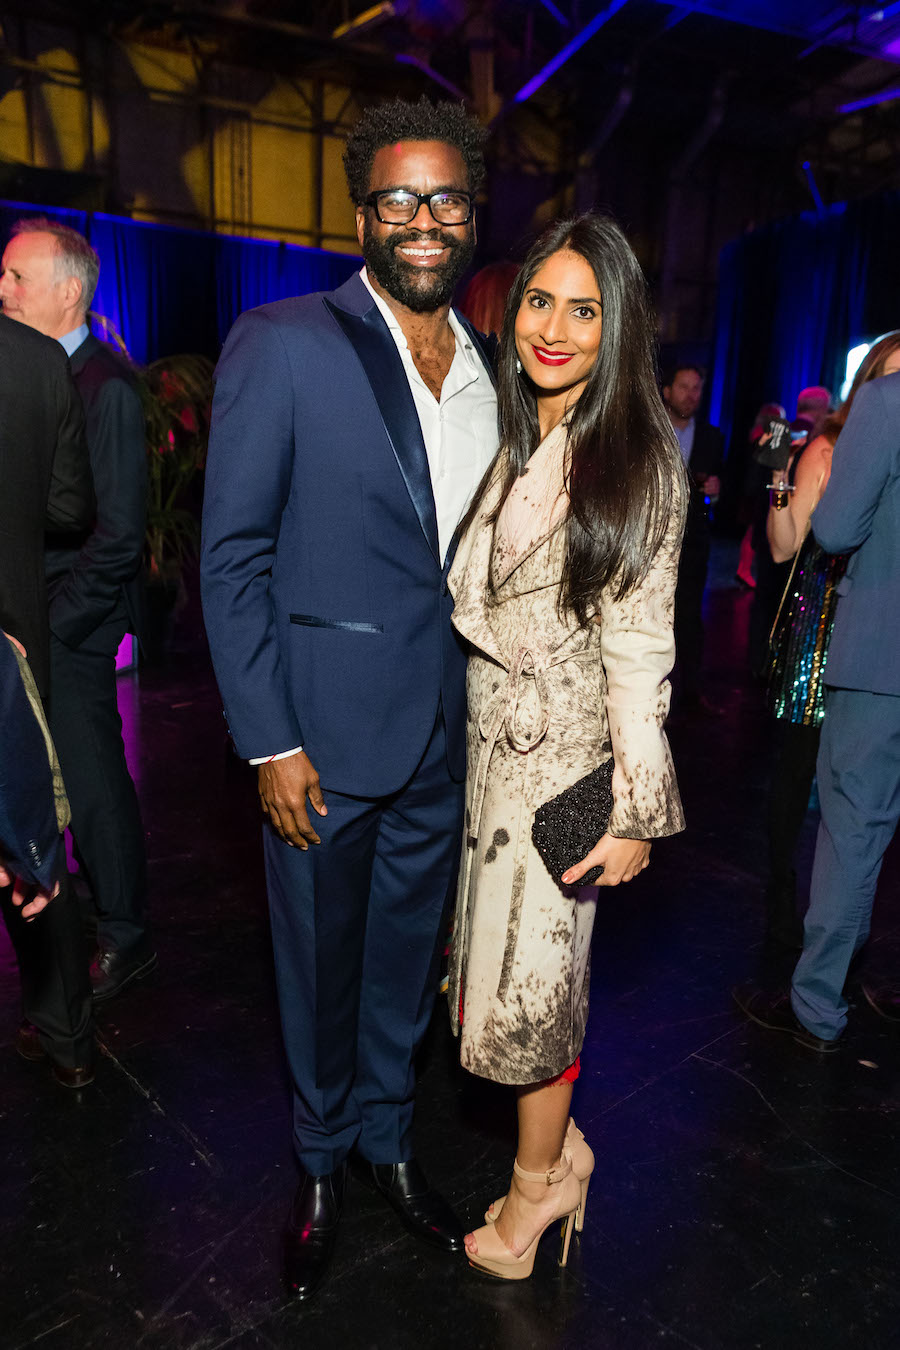 Erik Moore and Anisha Padamshi